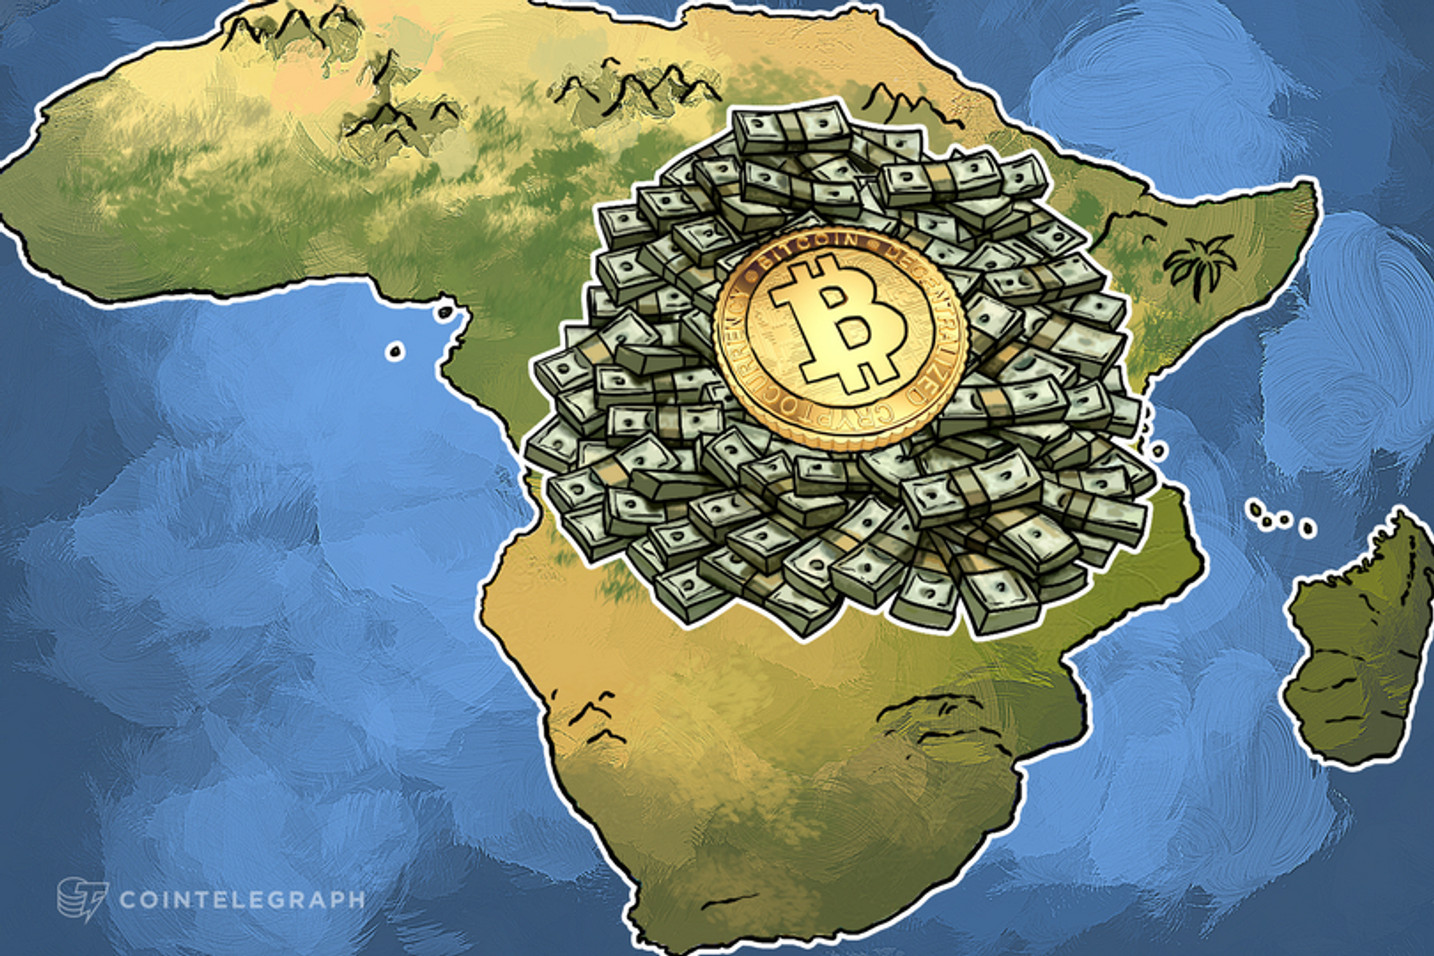 Africa Sees Record VC Funding in Q1 2015